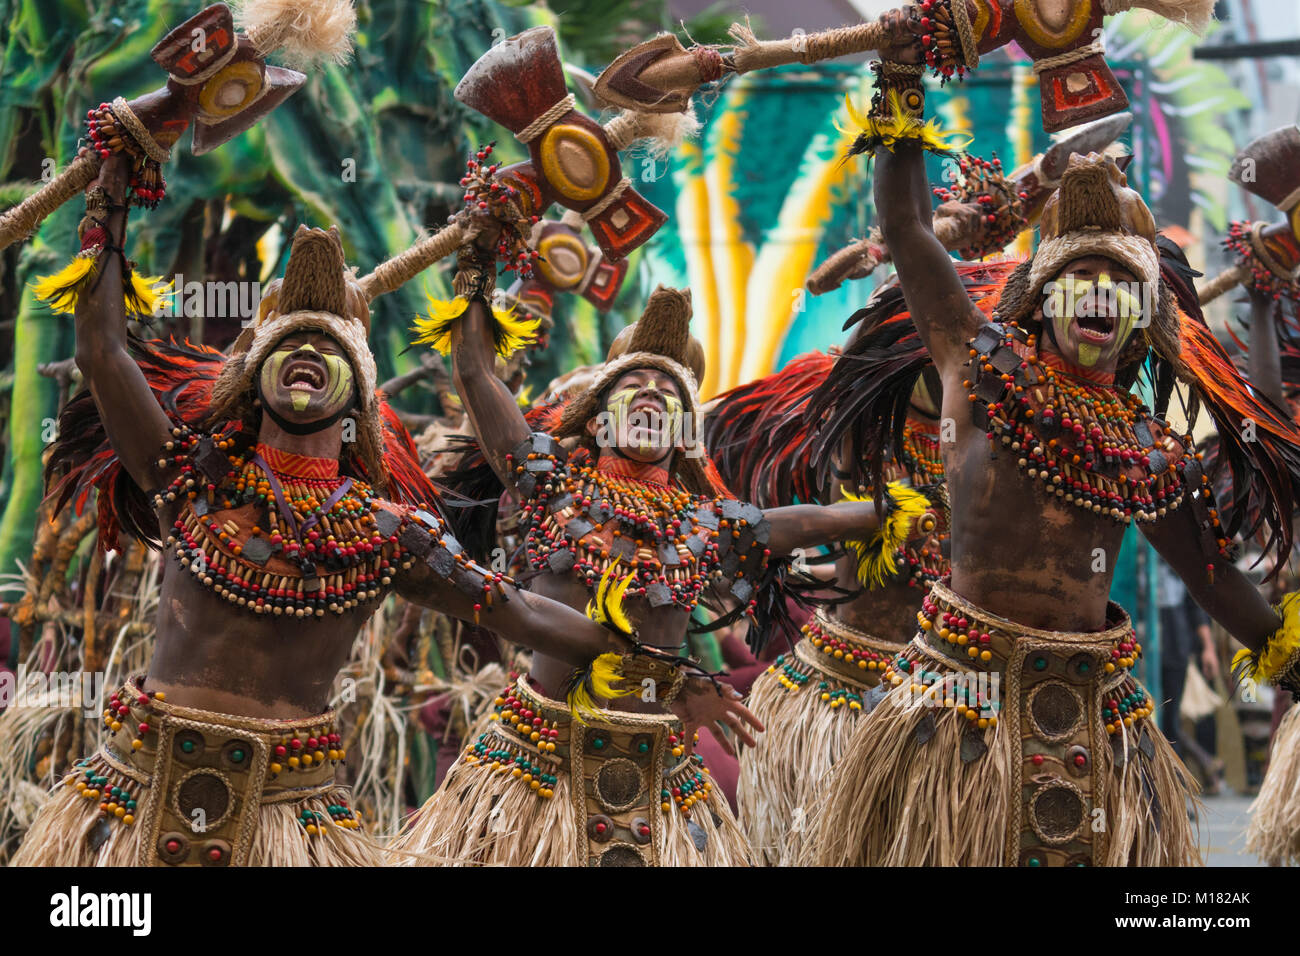 Iloilo City, Philippines. 28th January 2018.The culmination of Dinagyang,One of the most vibrant tribal street dancing - Stock Image